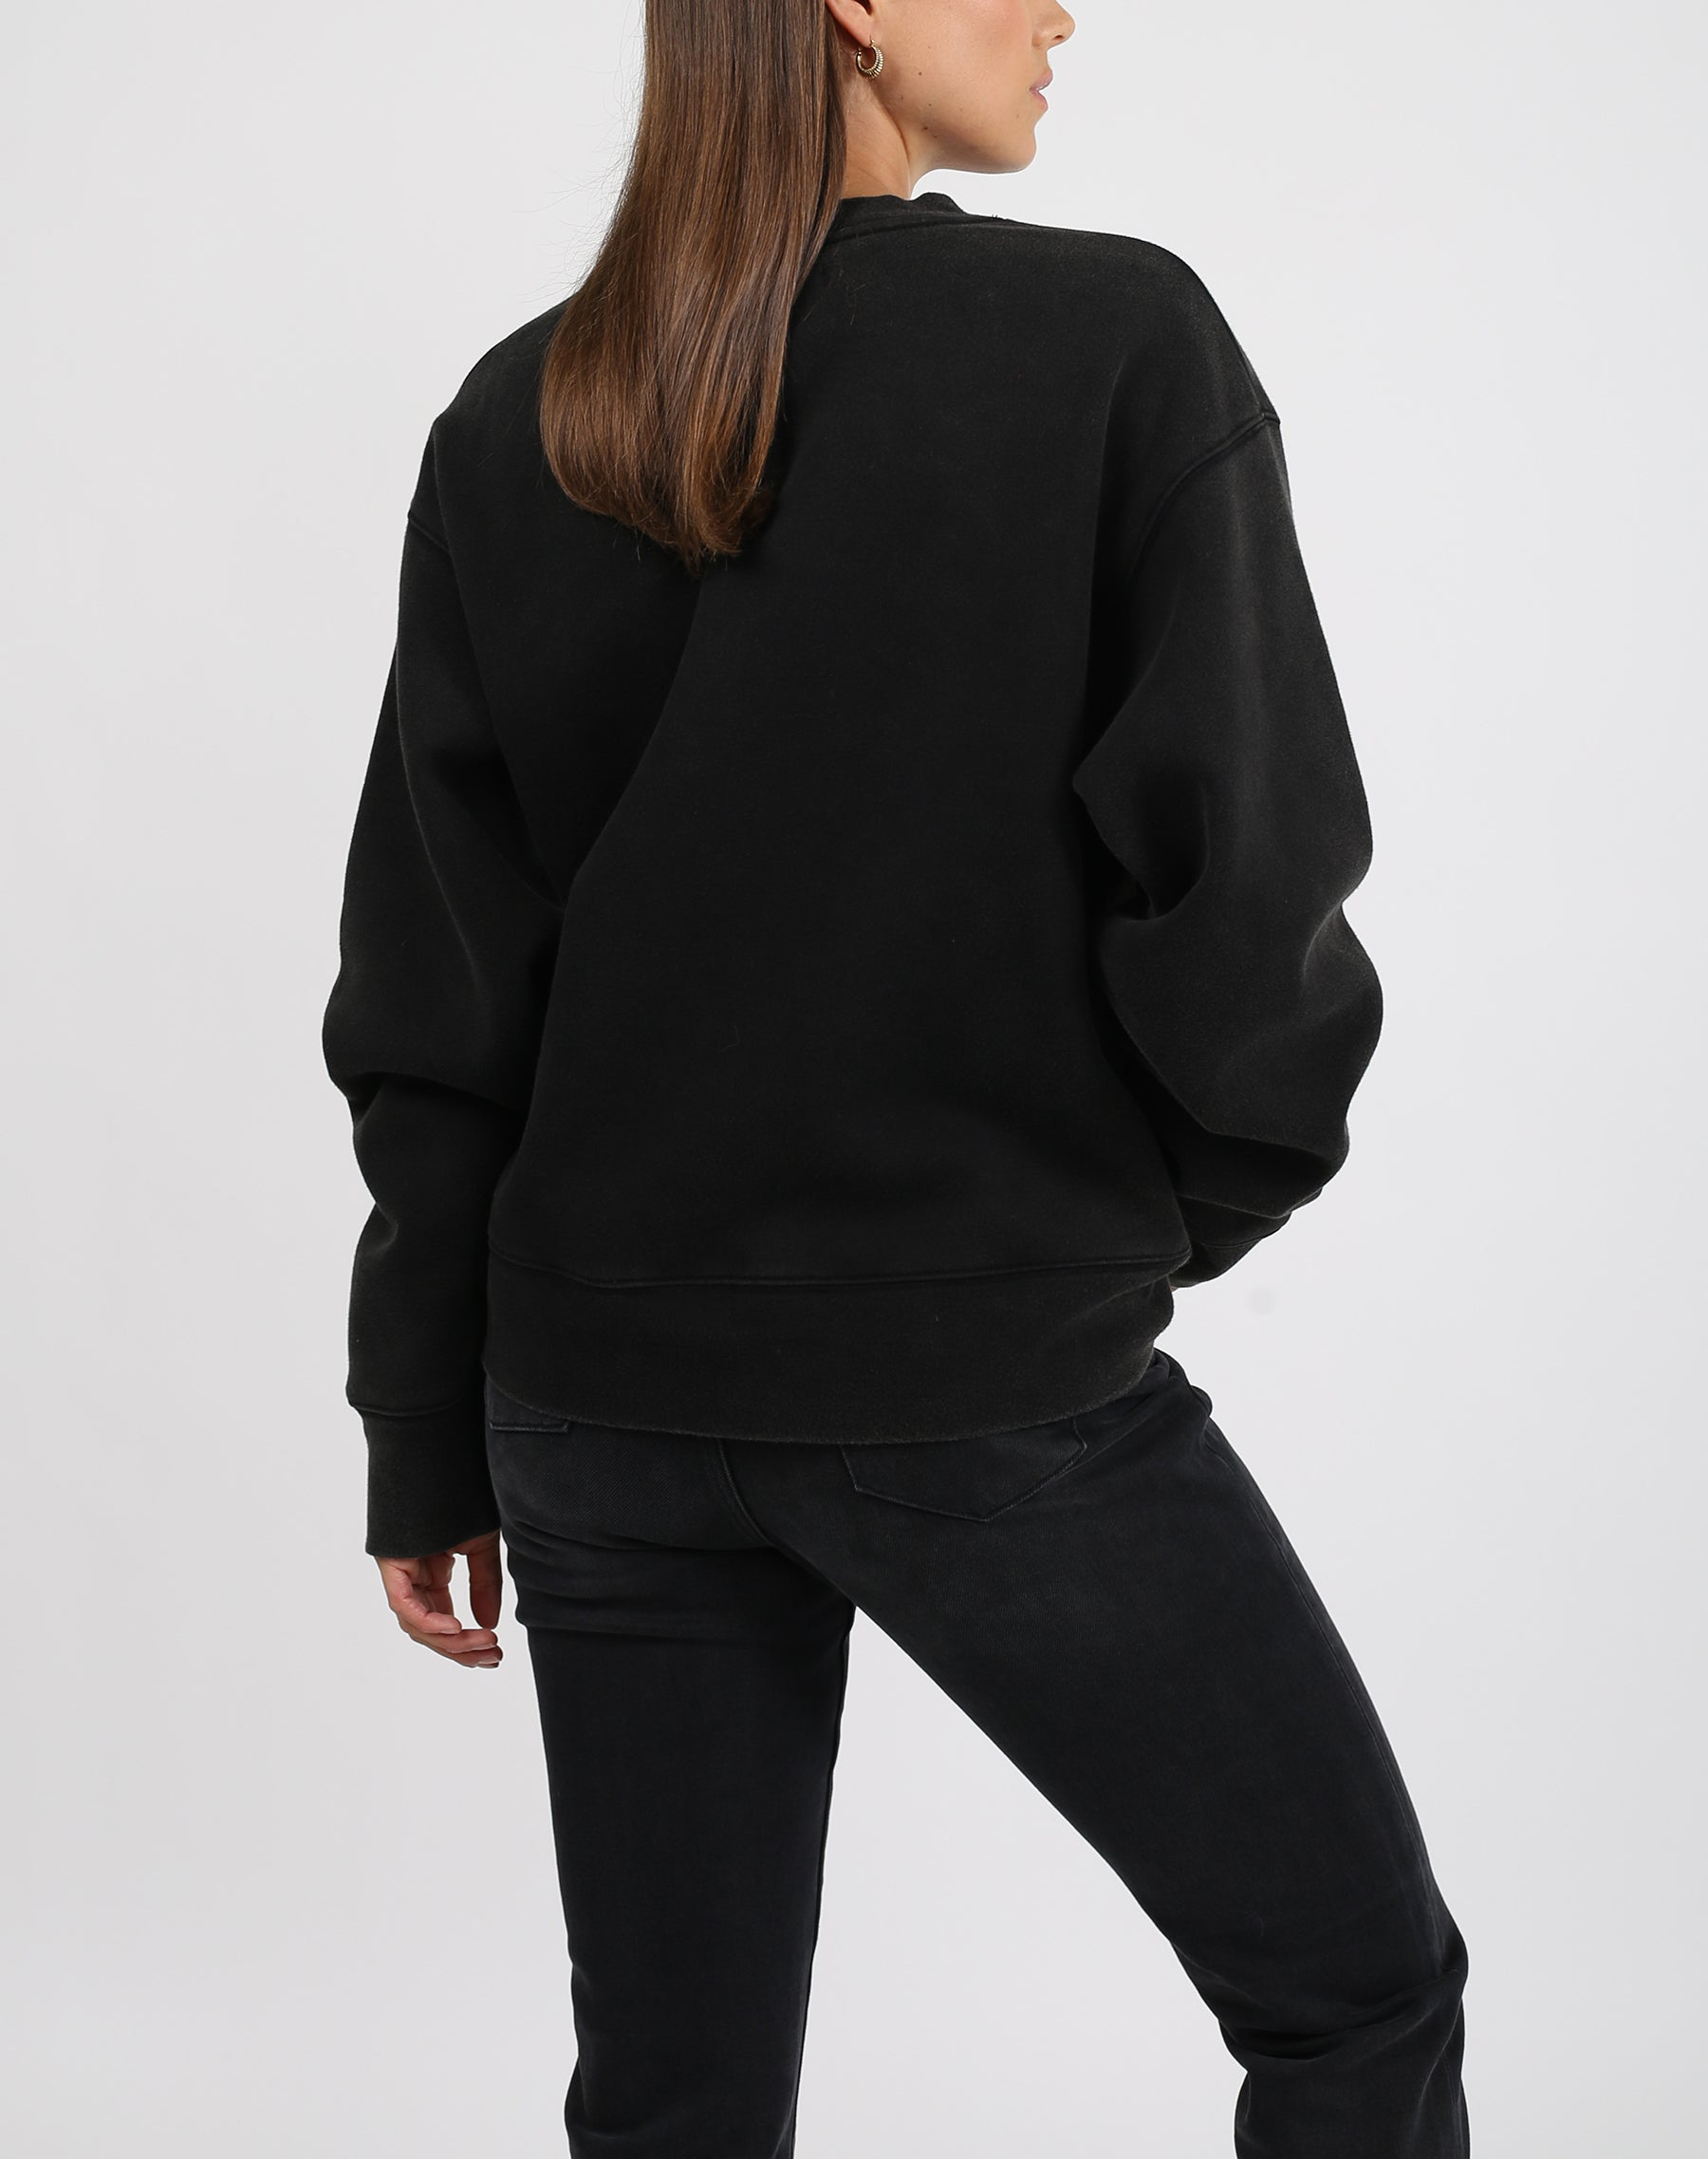 This is a photo of the back of a model wearing the brunette varsity step sister crew neck sweater in acid wash black by brunette the label.